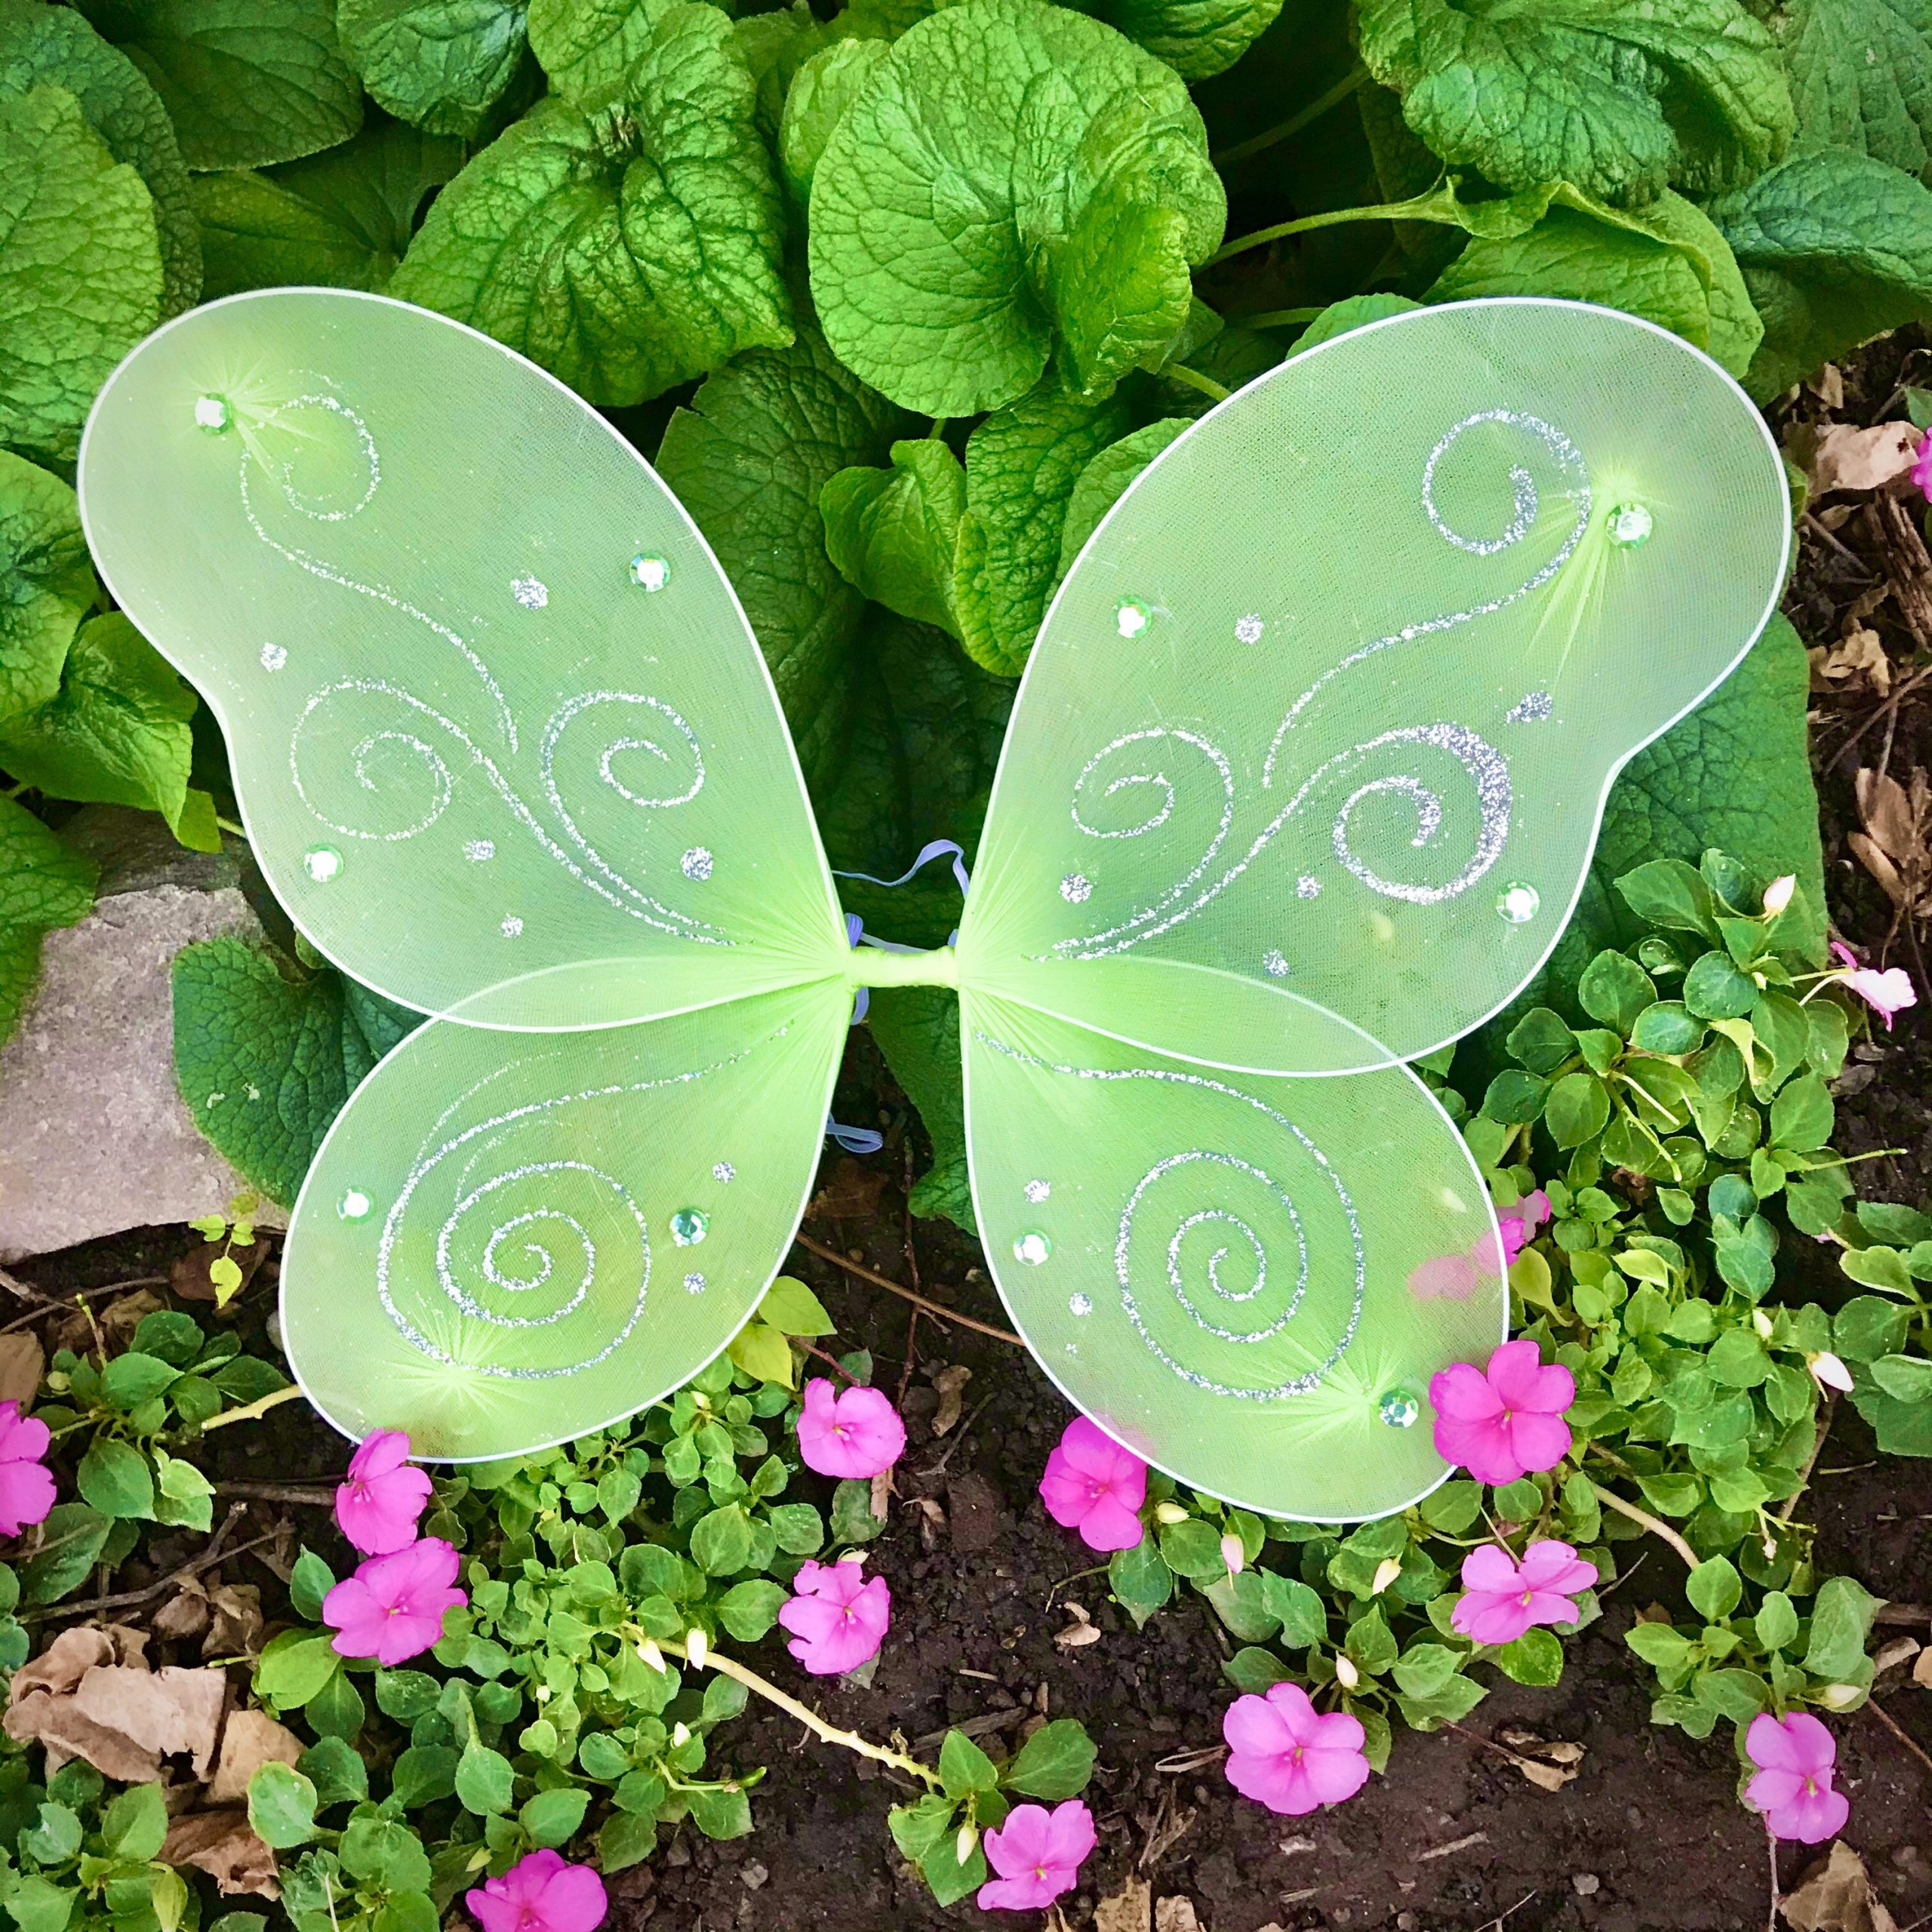 Green Fairy Wings Tinkerbell Halloween Costume Baby Girl Toddler Kids Child Woodland Forest Butterfly Gift Teen Adult Pixie Cosplay Set